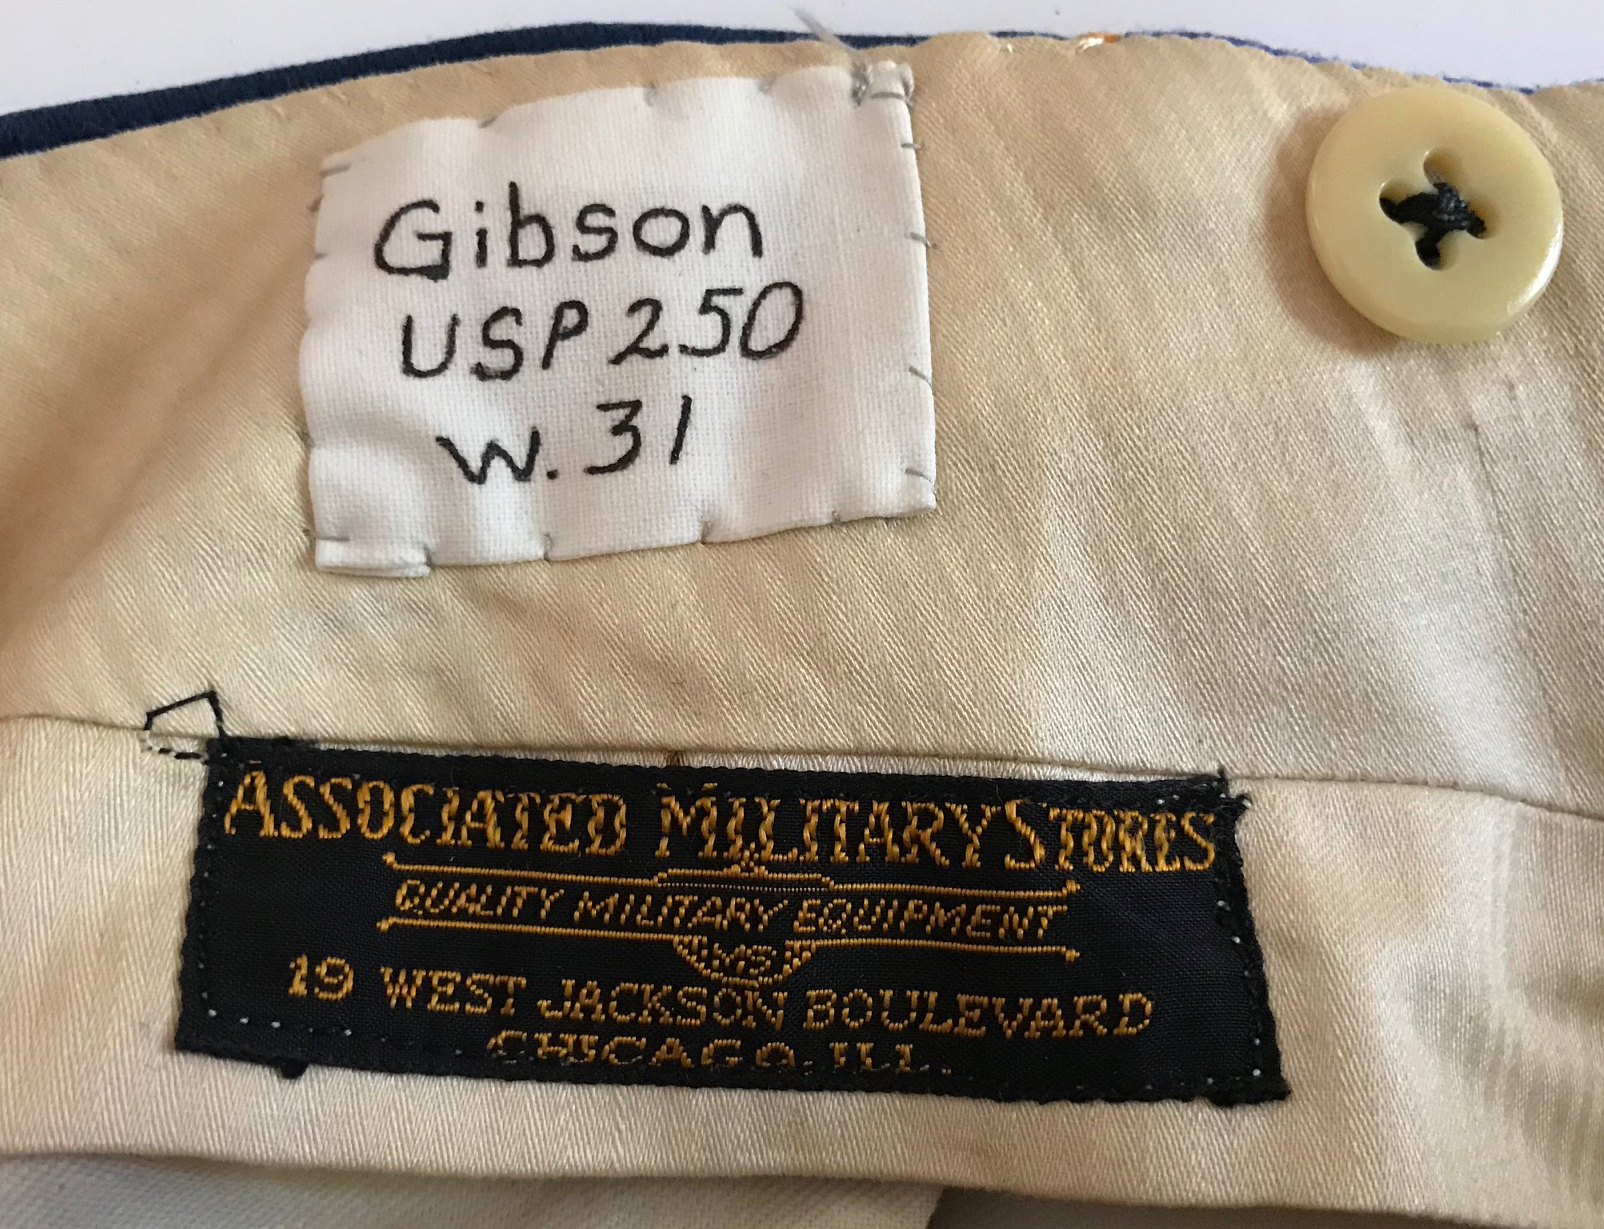 WWII era US Army Dress trousers